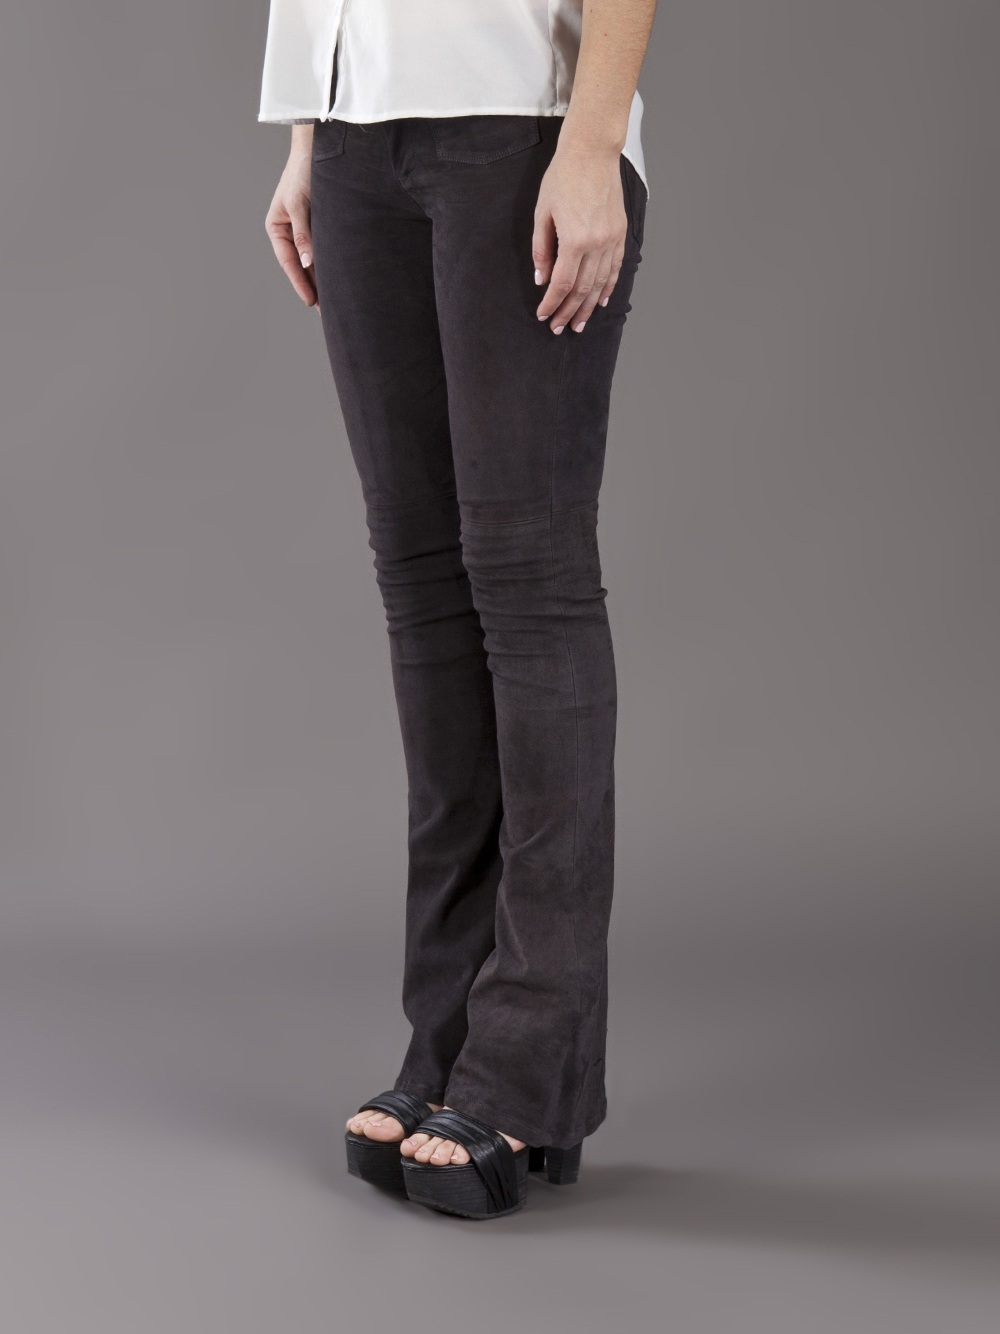 Goldsign Blossom Flare Jean in Black | Lyst